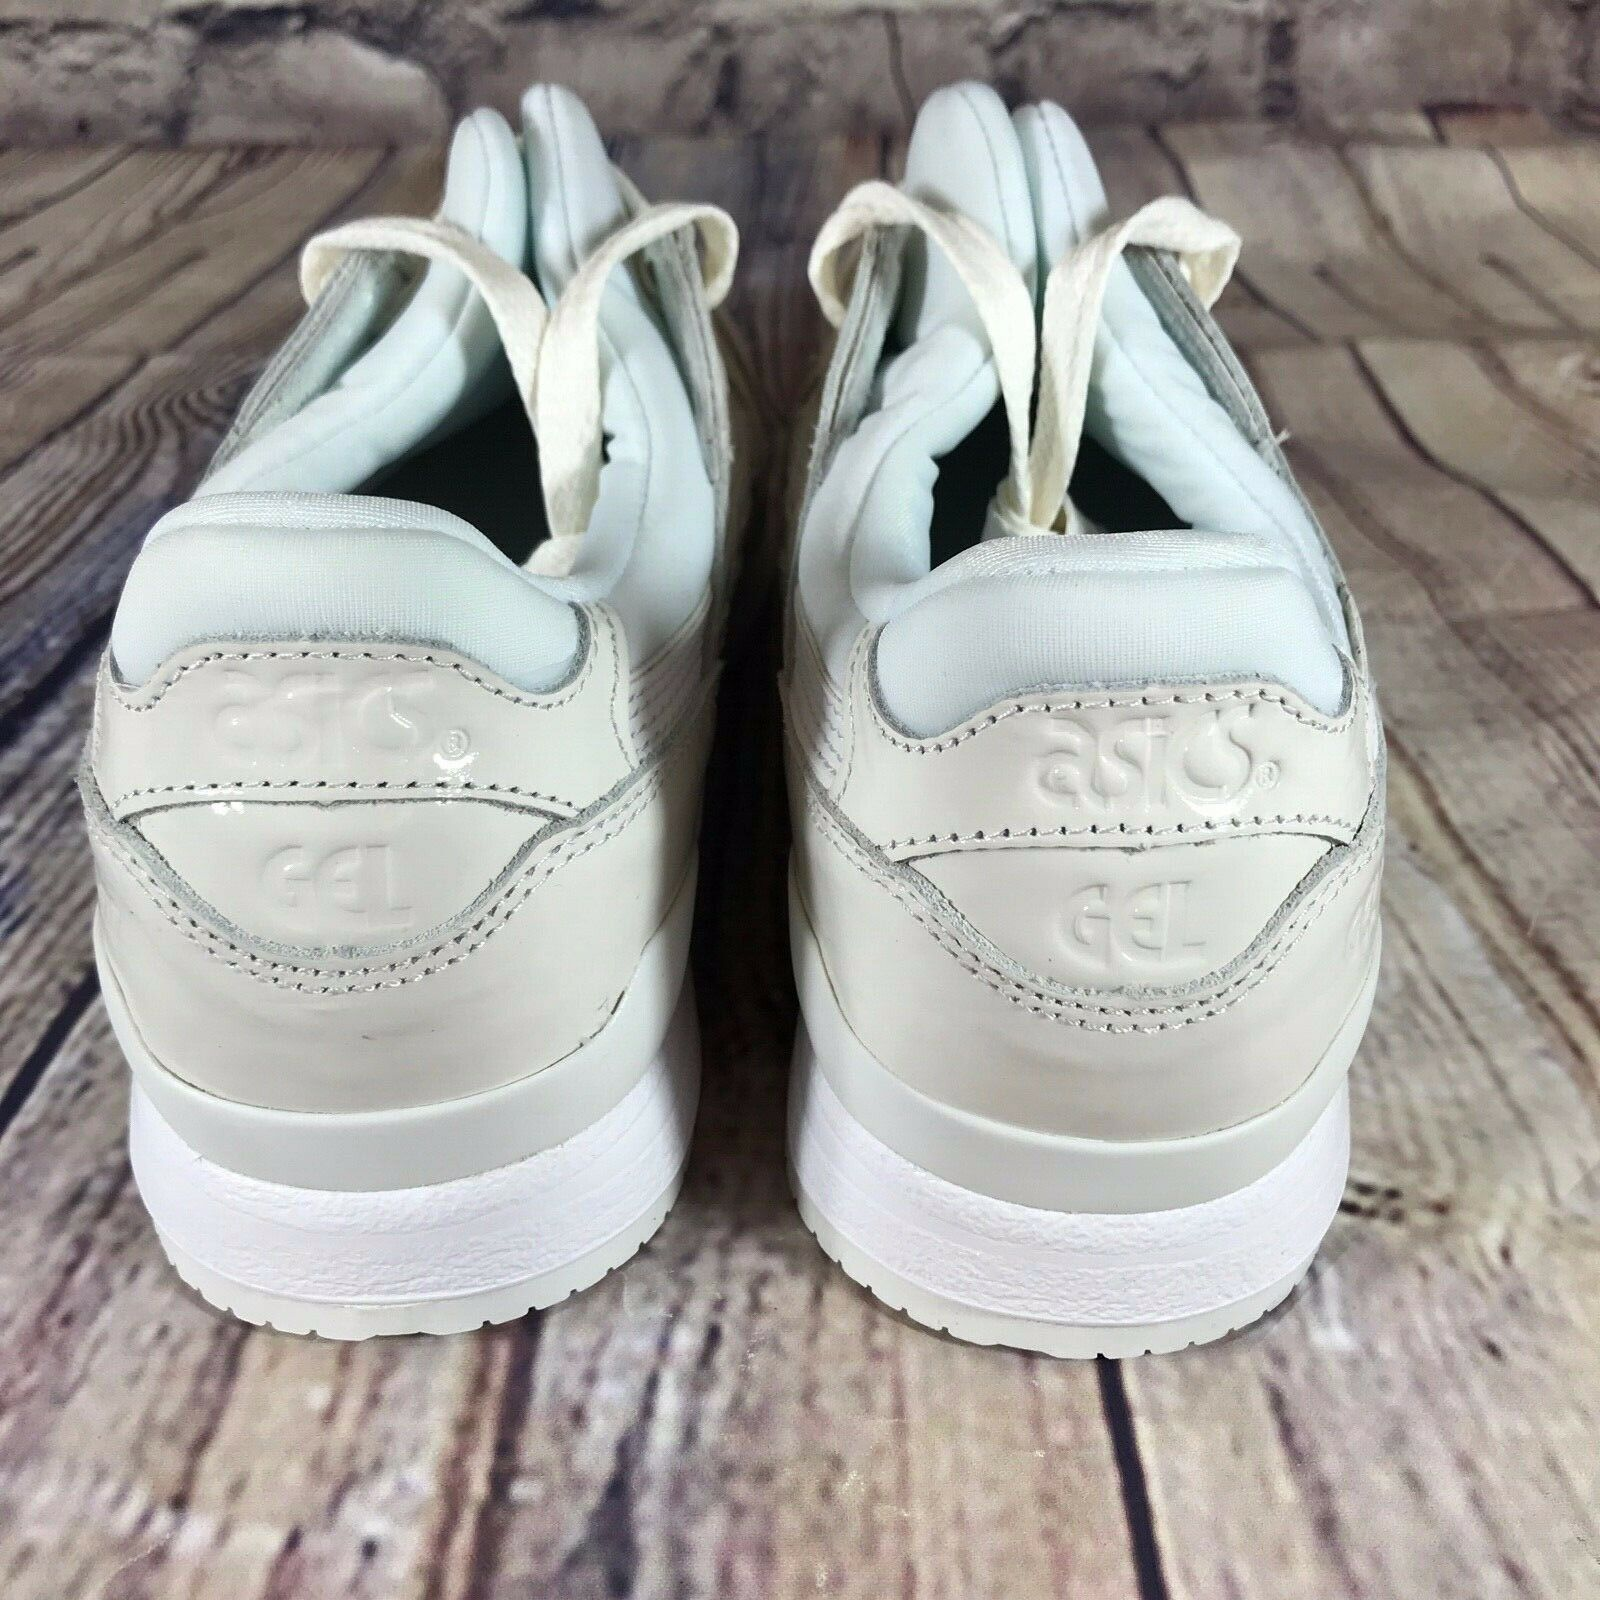 Details about ASICS Gel Lyte III WhiteWhite Womens running shoes HL7Q5.0101 Size 7 $120